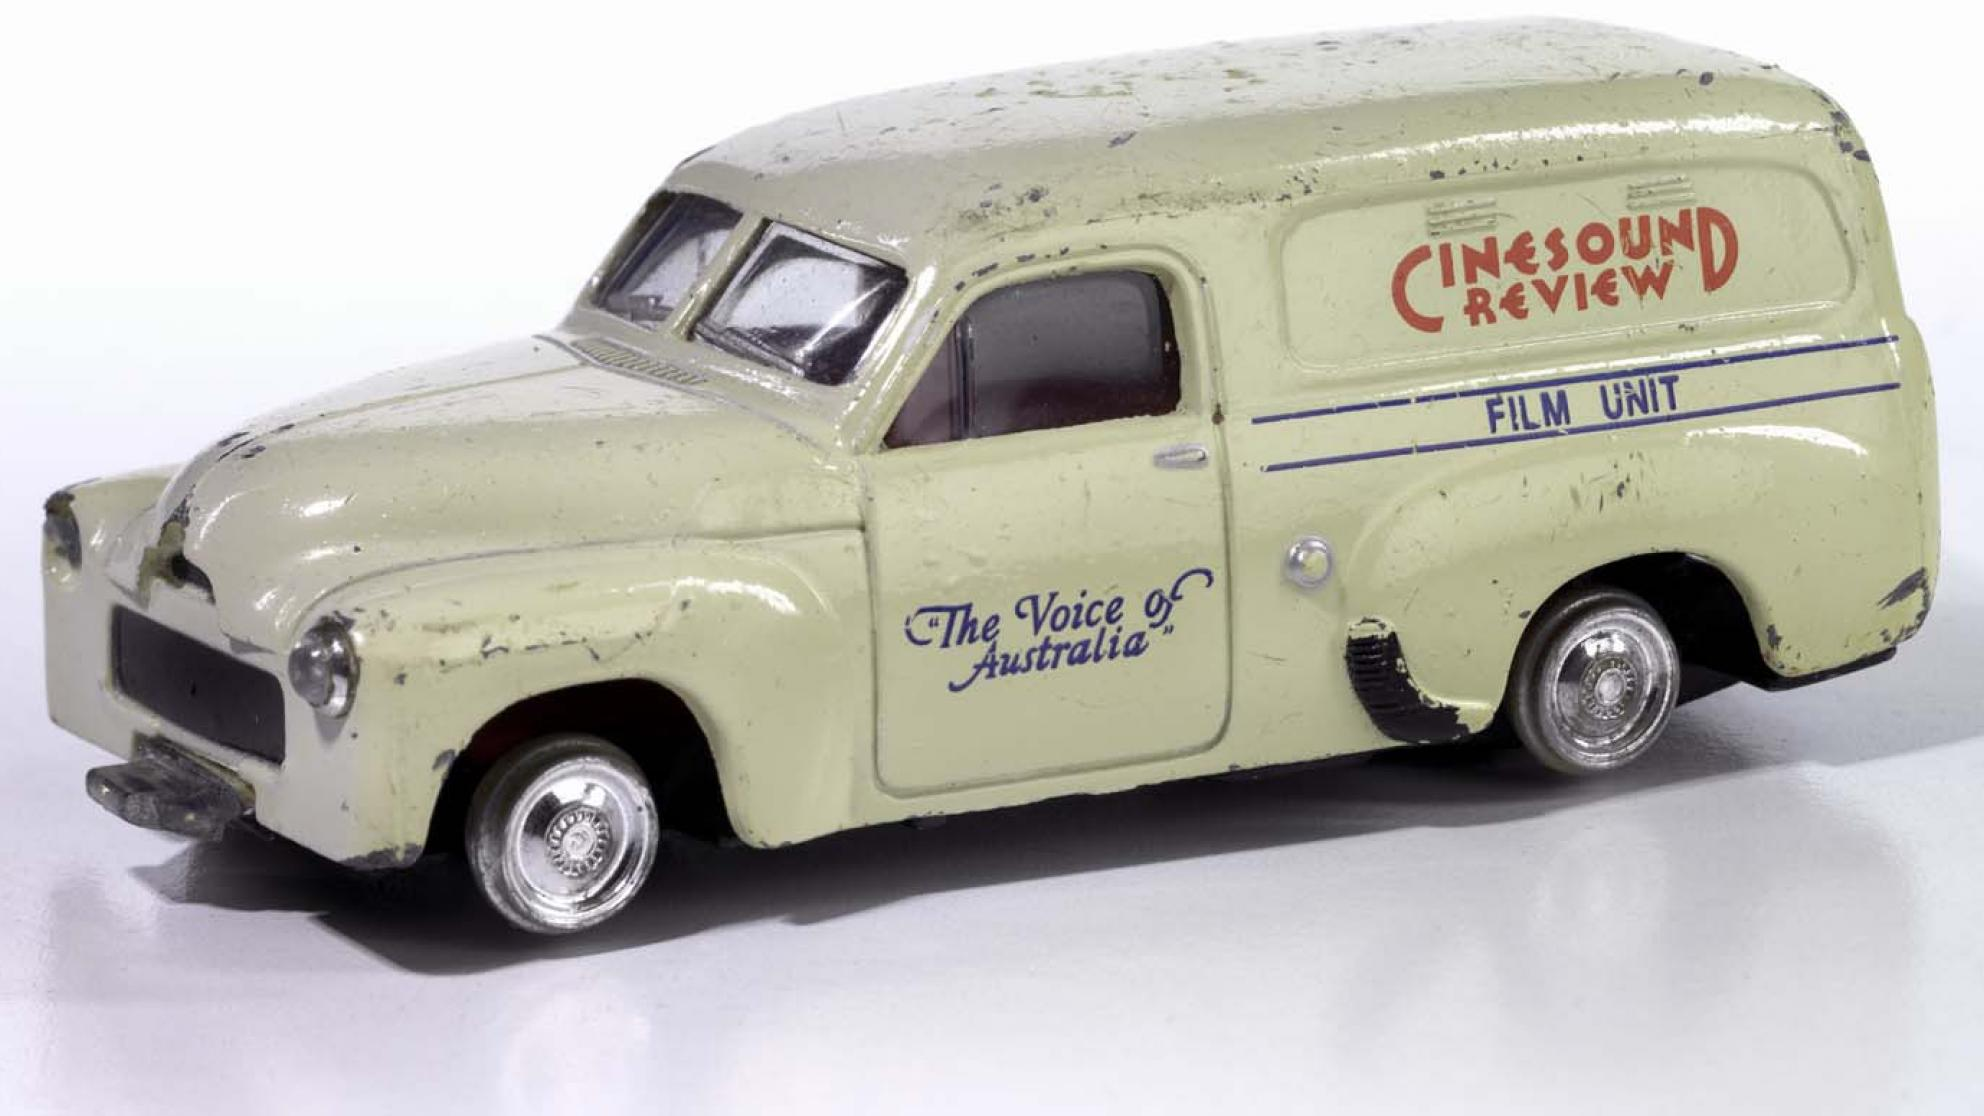 Die-cast scale model of a cream-coloured FJ Holden panel van used by Cinesound Review